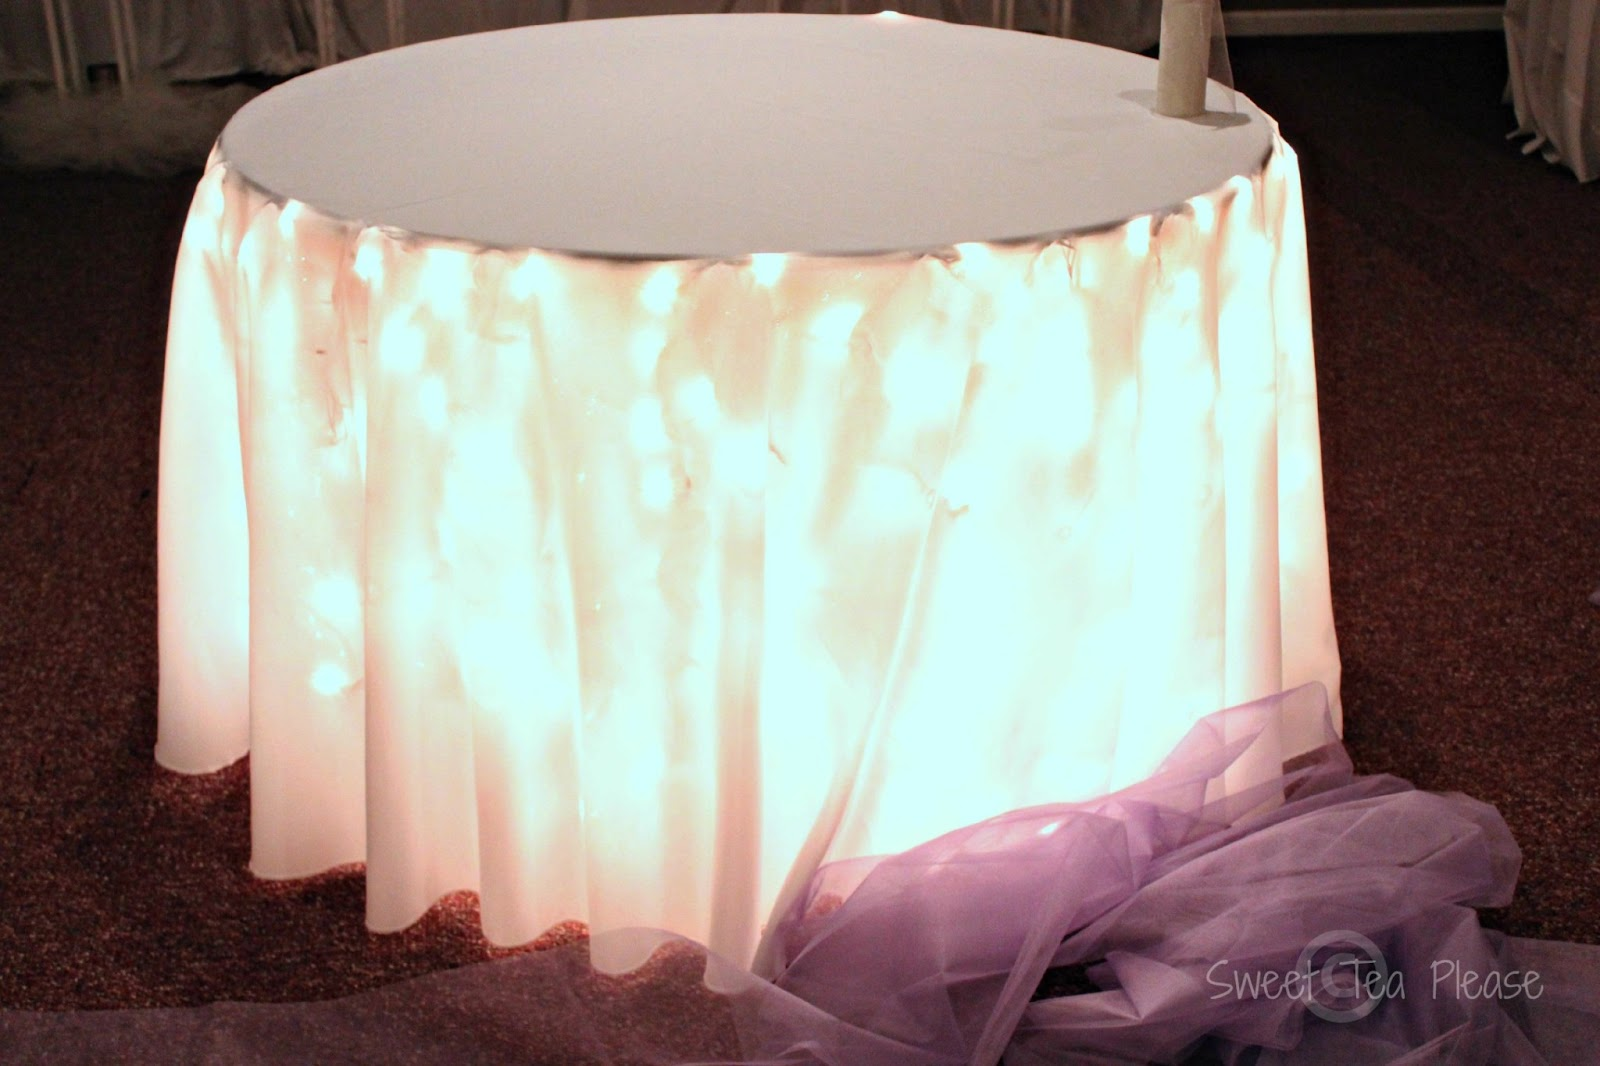 How To Decorate A Cake Table With Lights